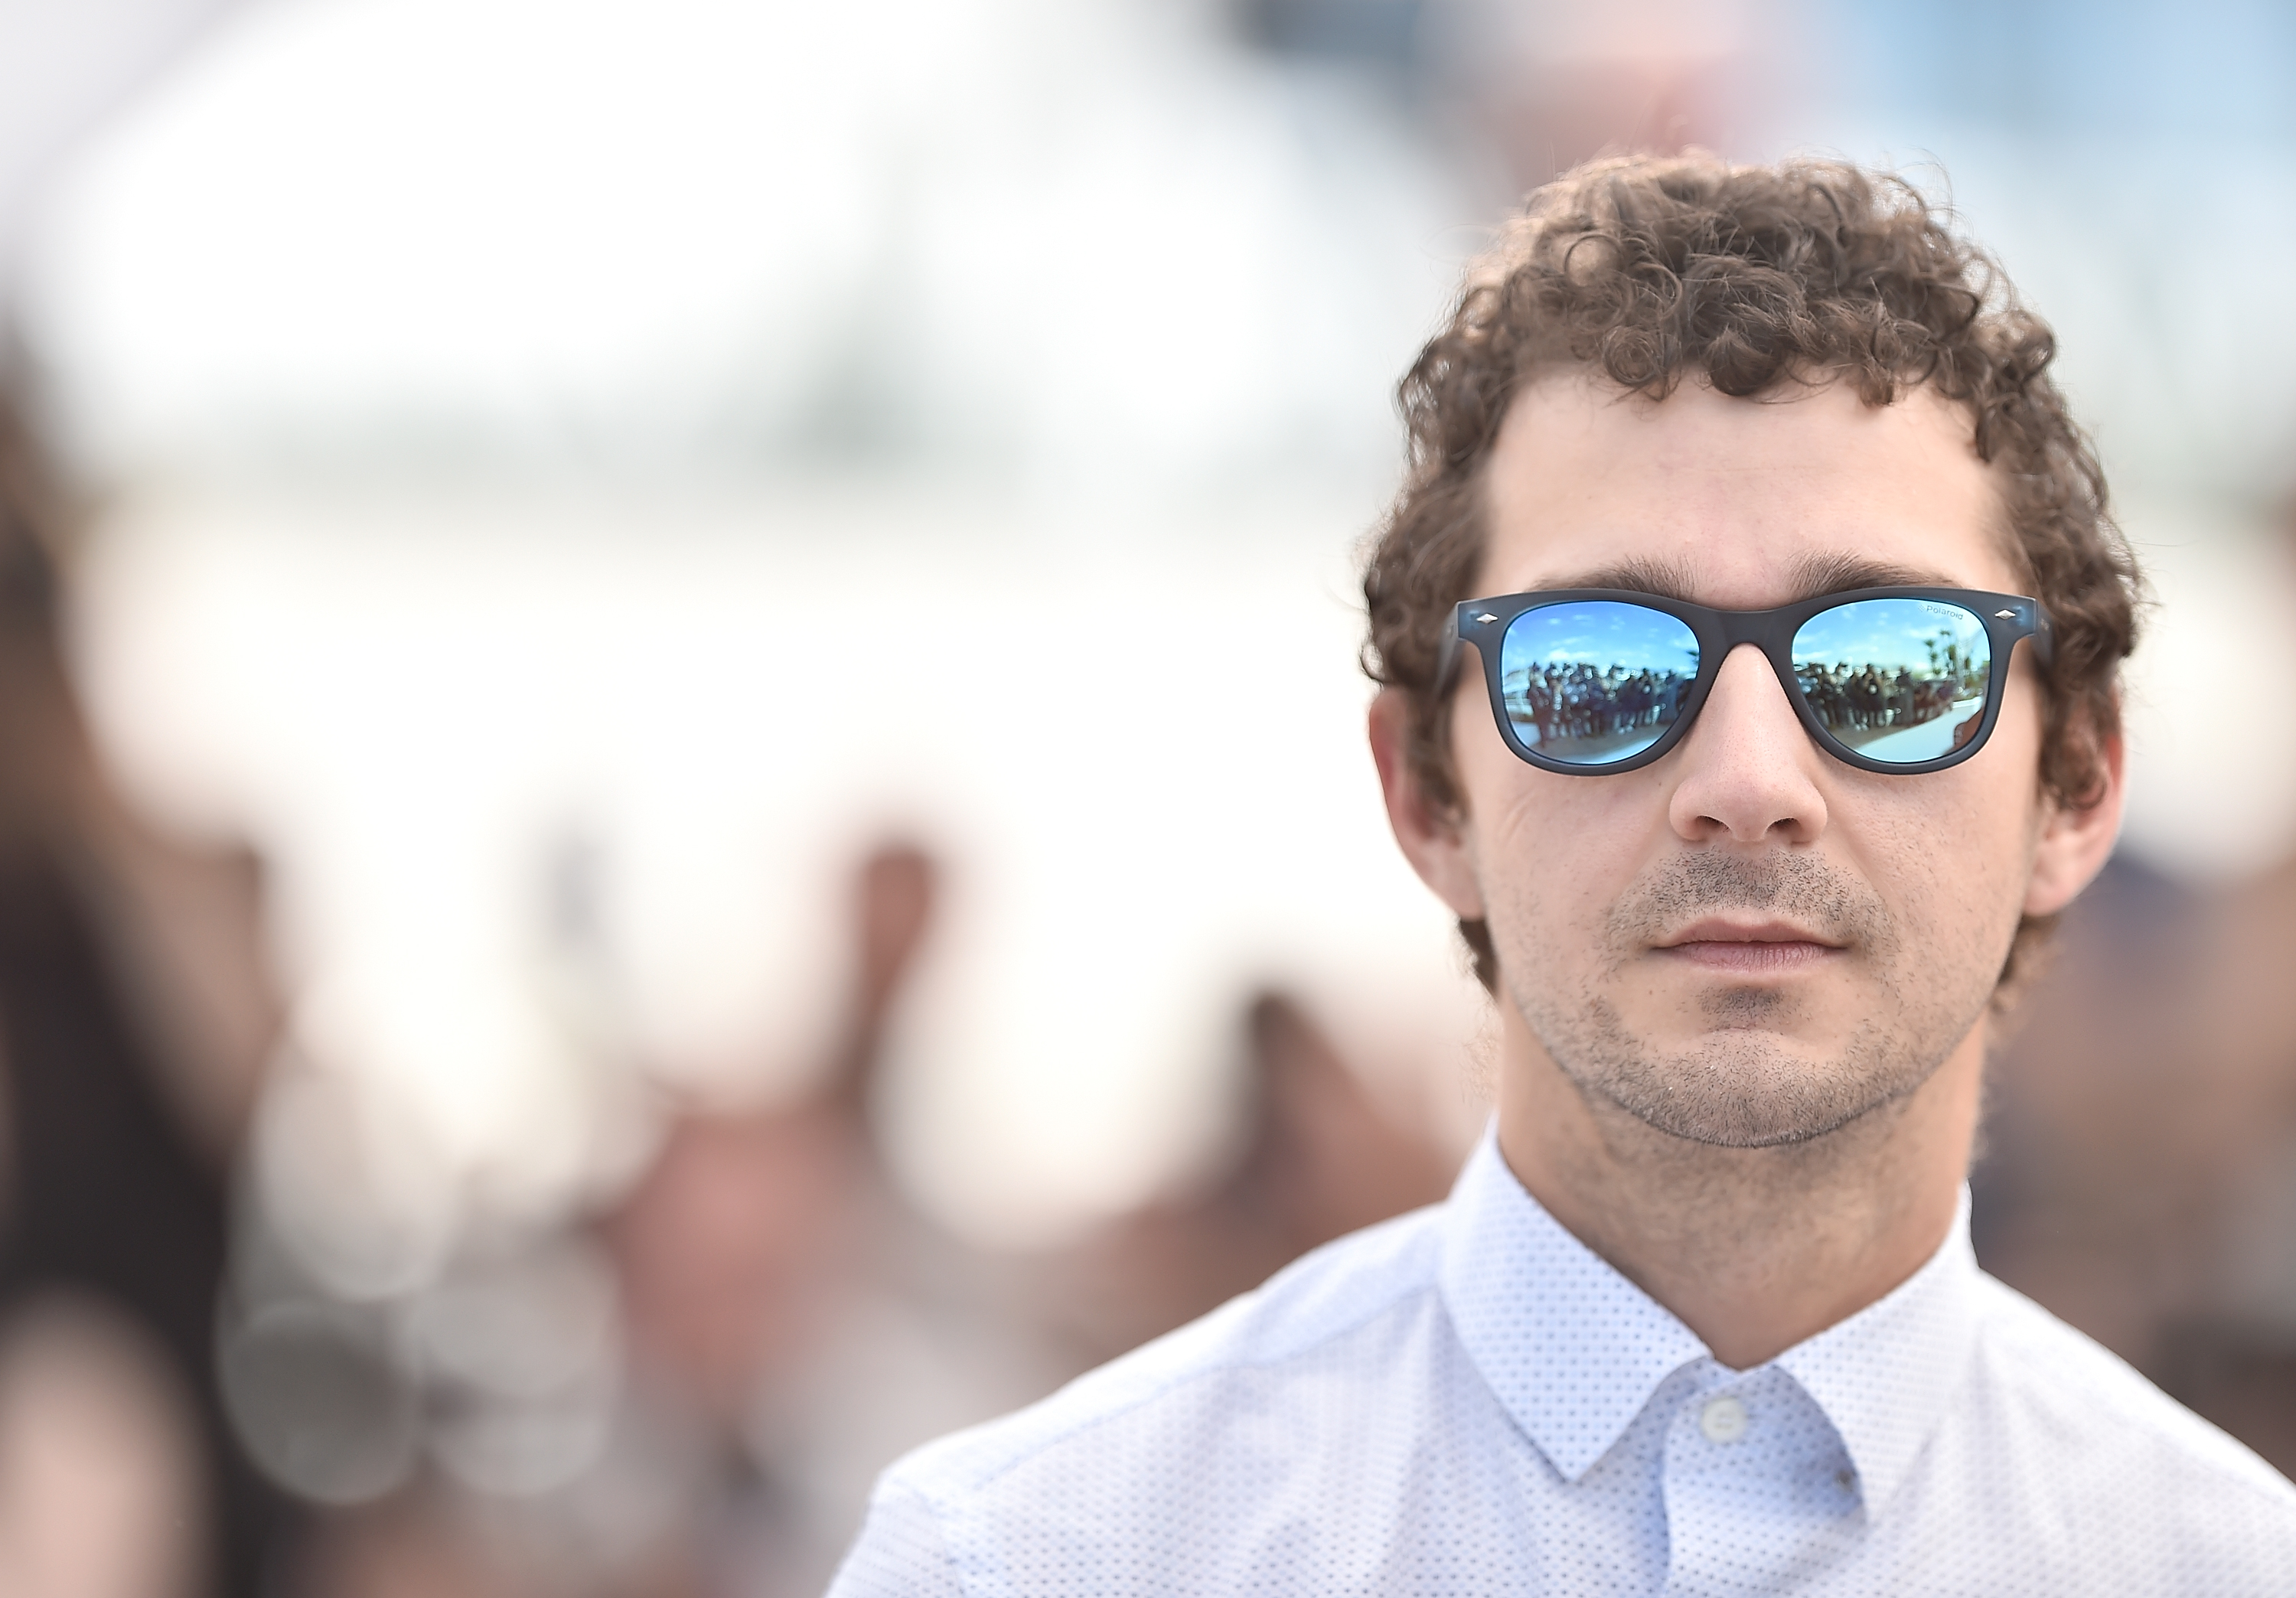 Shia LaBeouf describes himself as part of the 'underclass'